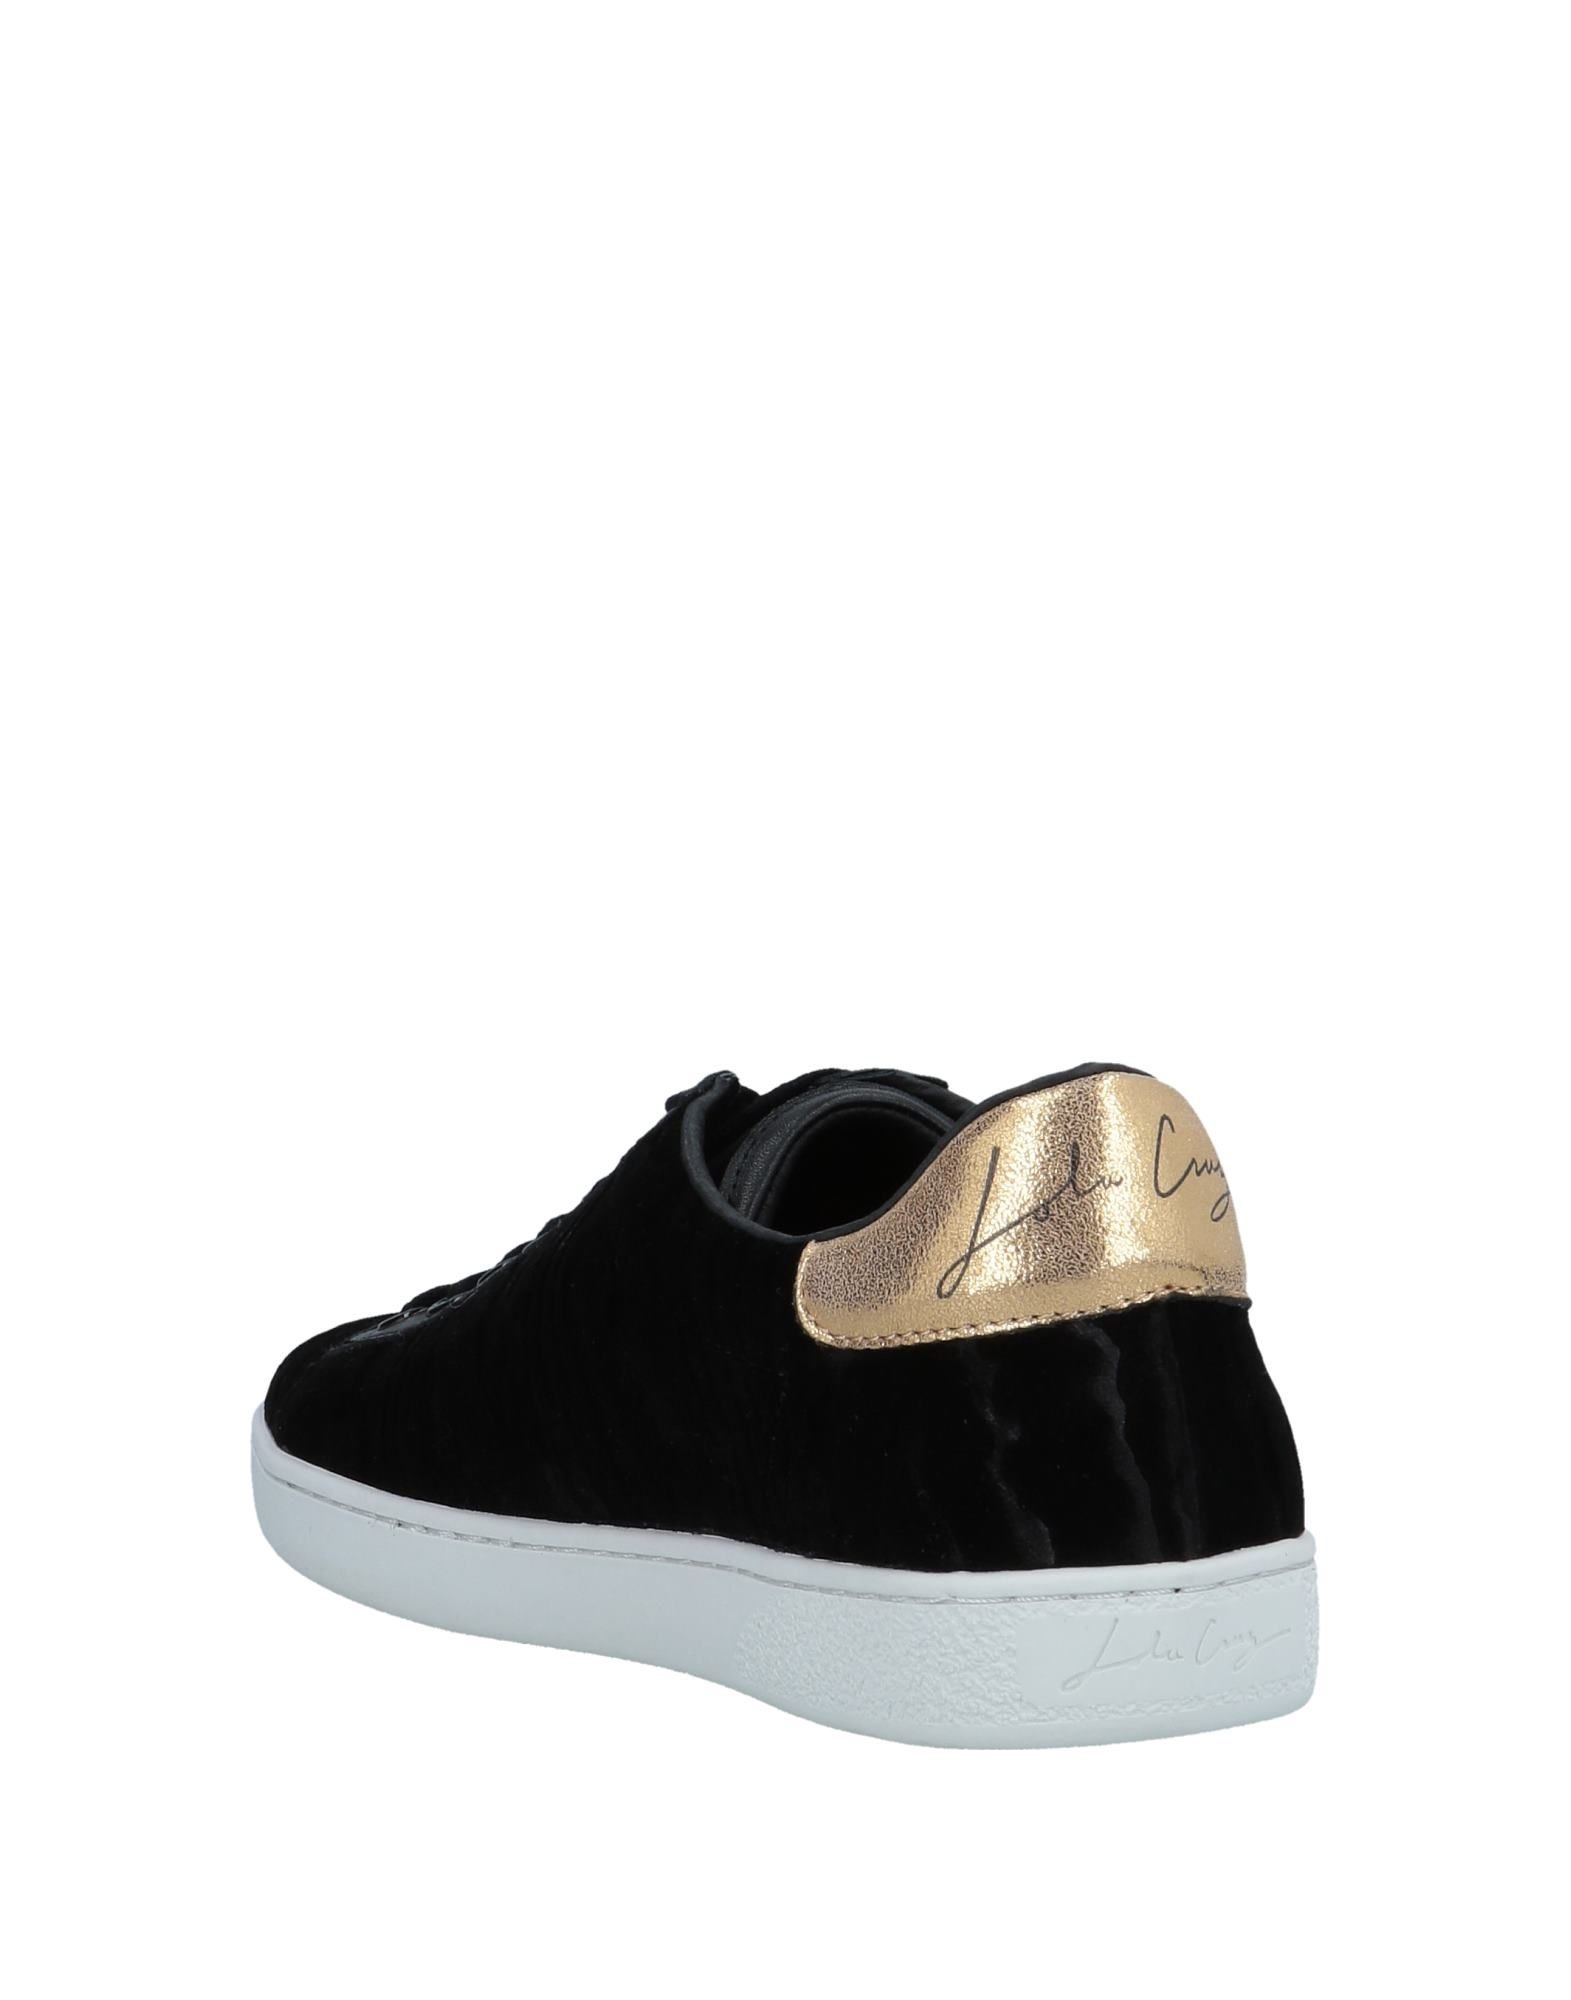 Lola Cruz Sneakers - Women Lola Lola Lola Cruz Sneakers online on  United Kingdom - 11553275FX 34cbaf